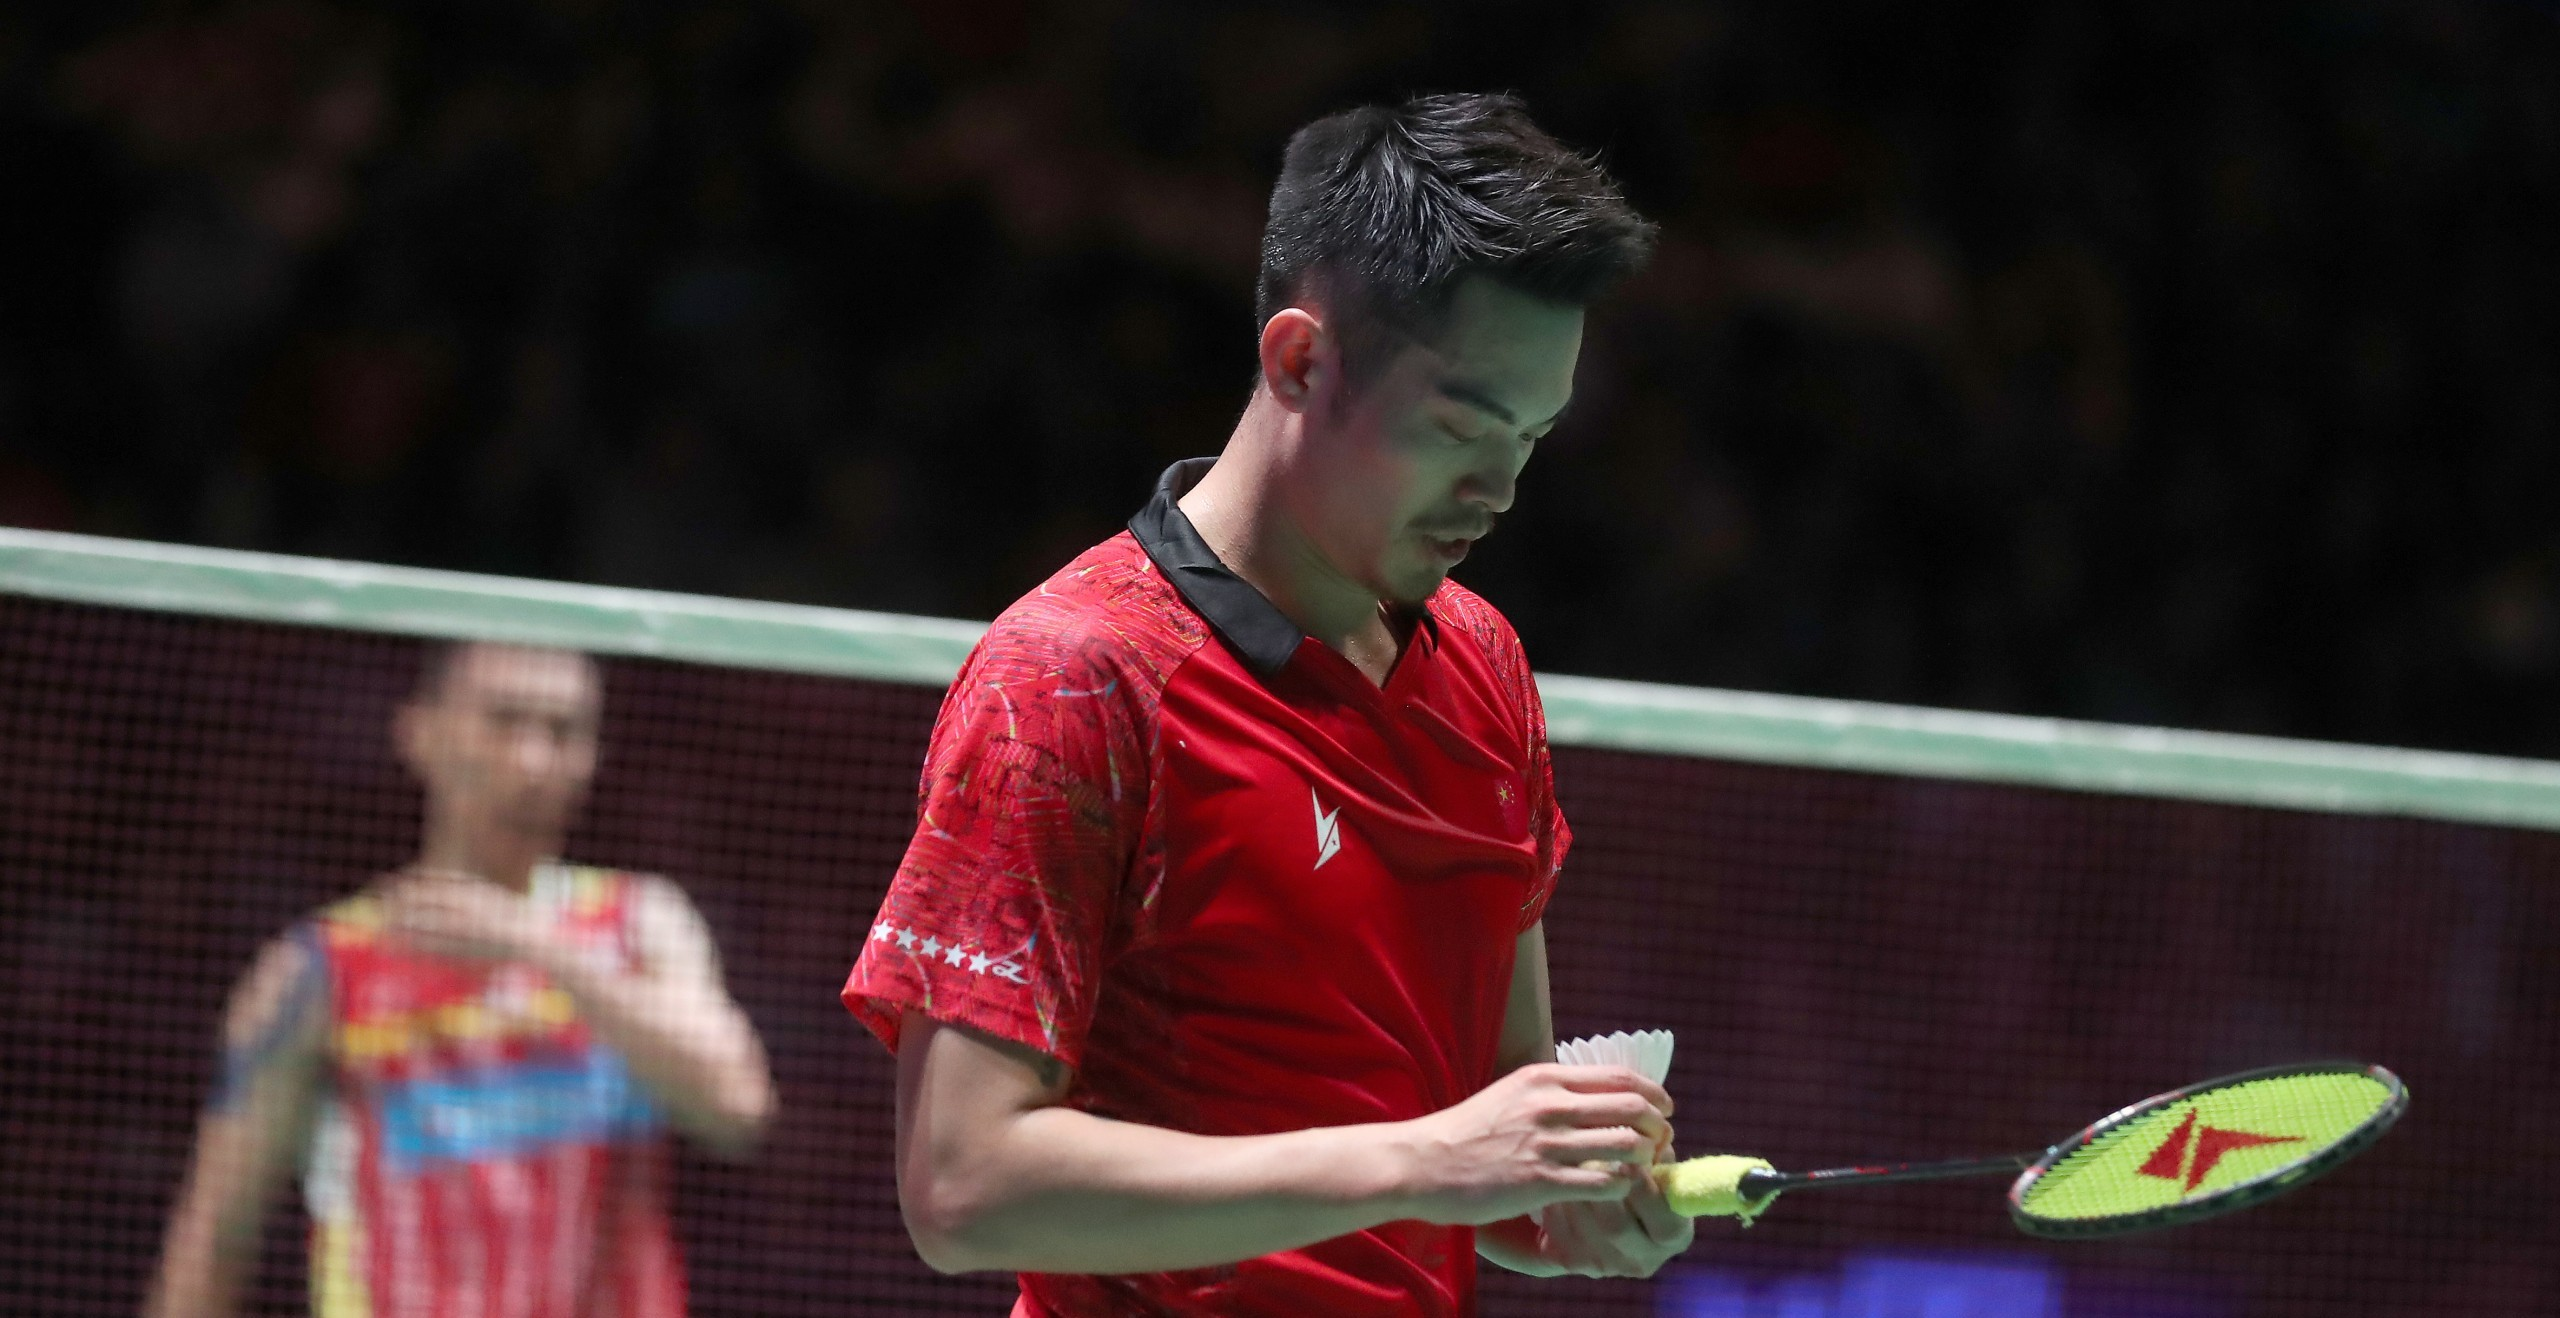 Lee Made Me the Player I Was, Says Lin Dan